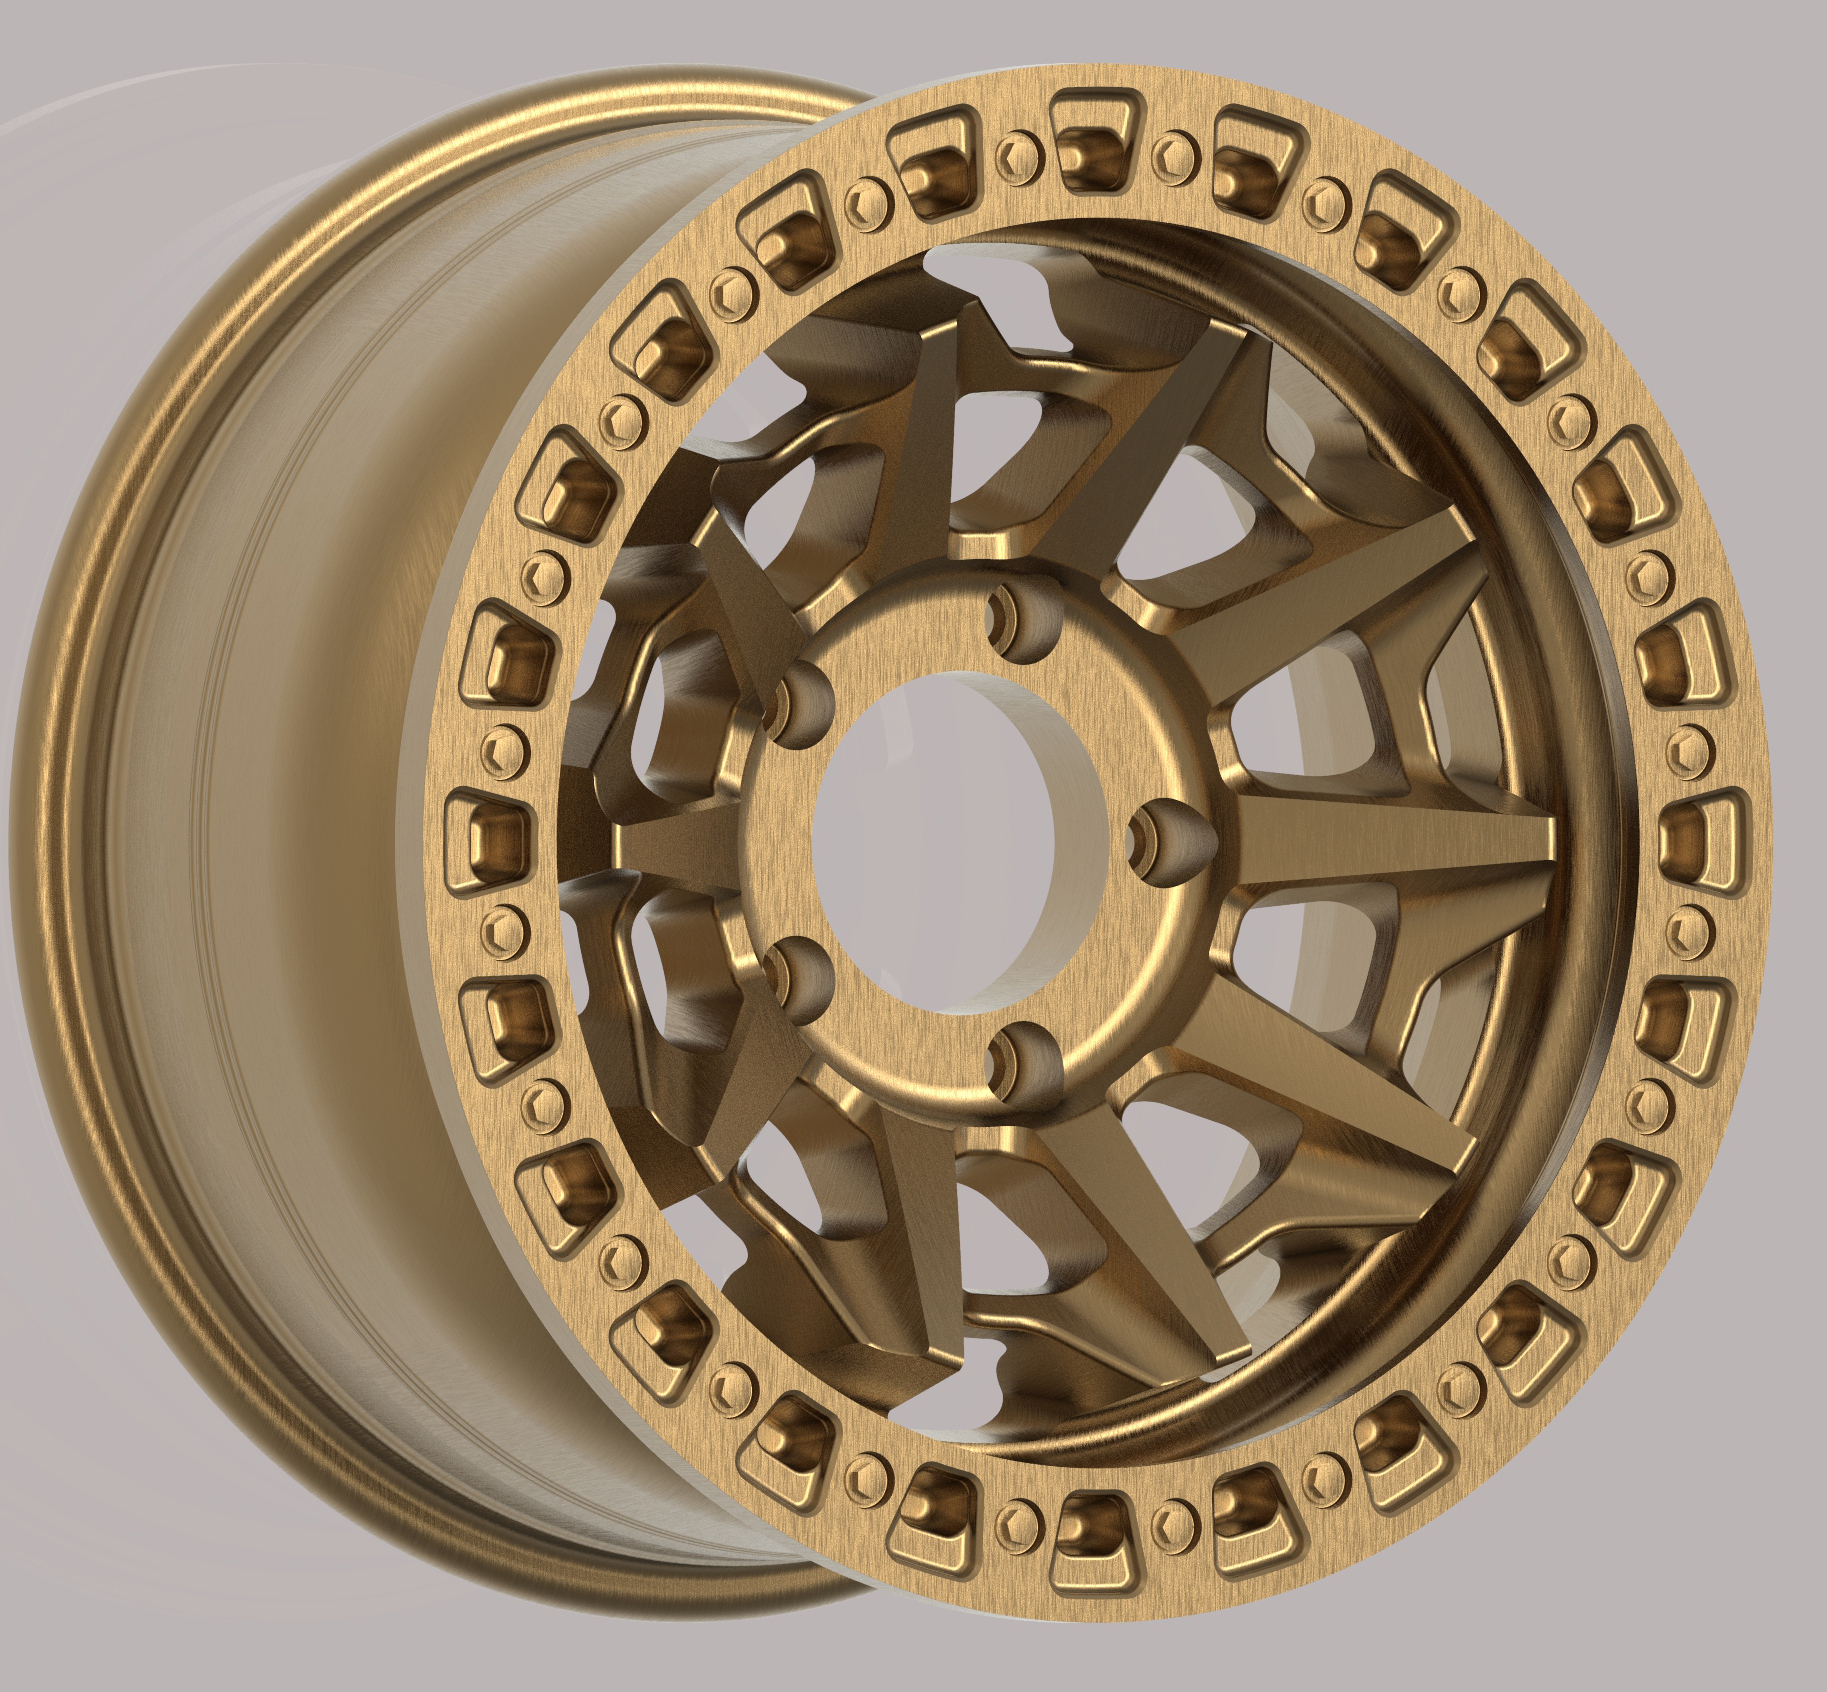 Bead lock off-road wheels 4X4 truck car wheels heavy duty with big load rate 18X9 alloy wheel rim